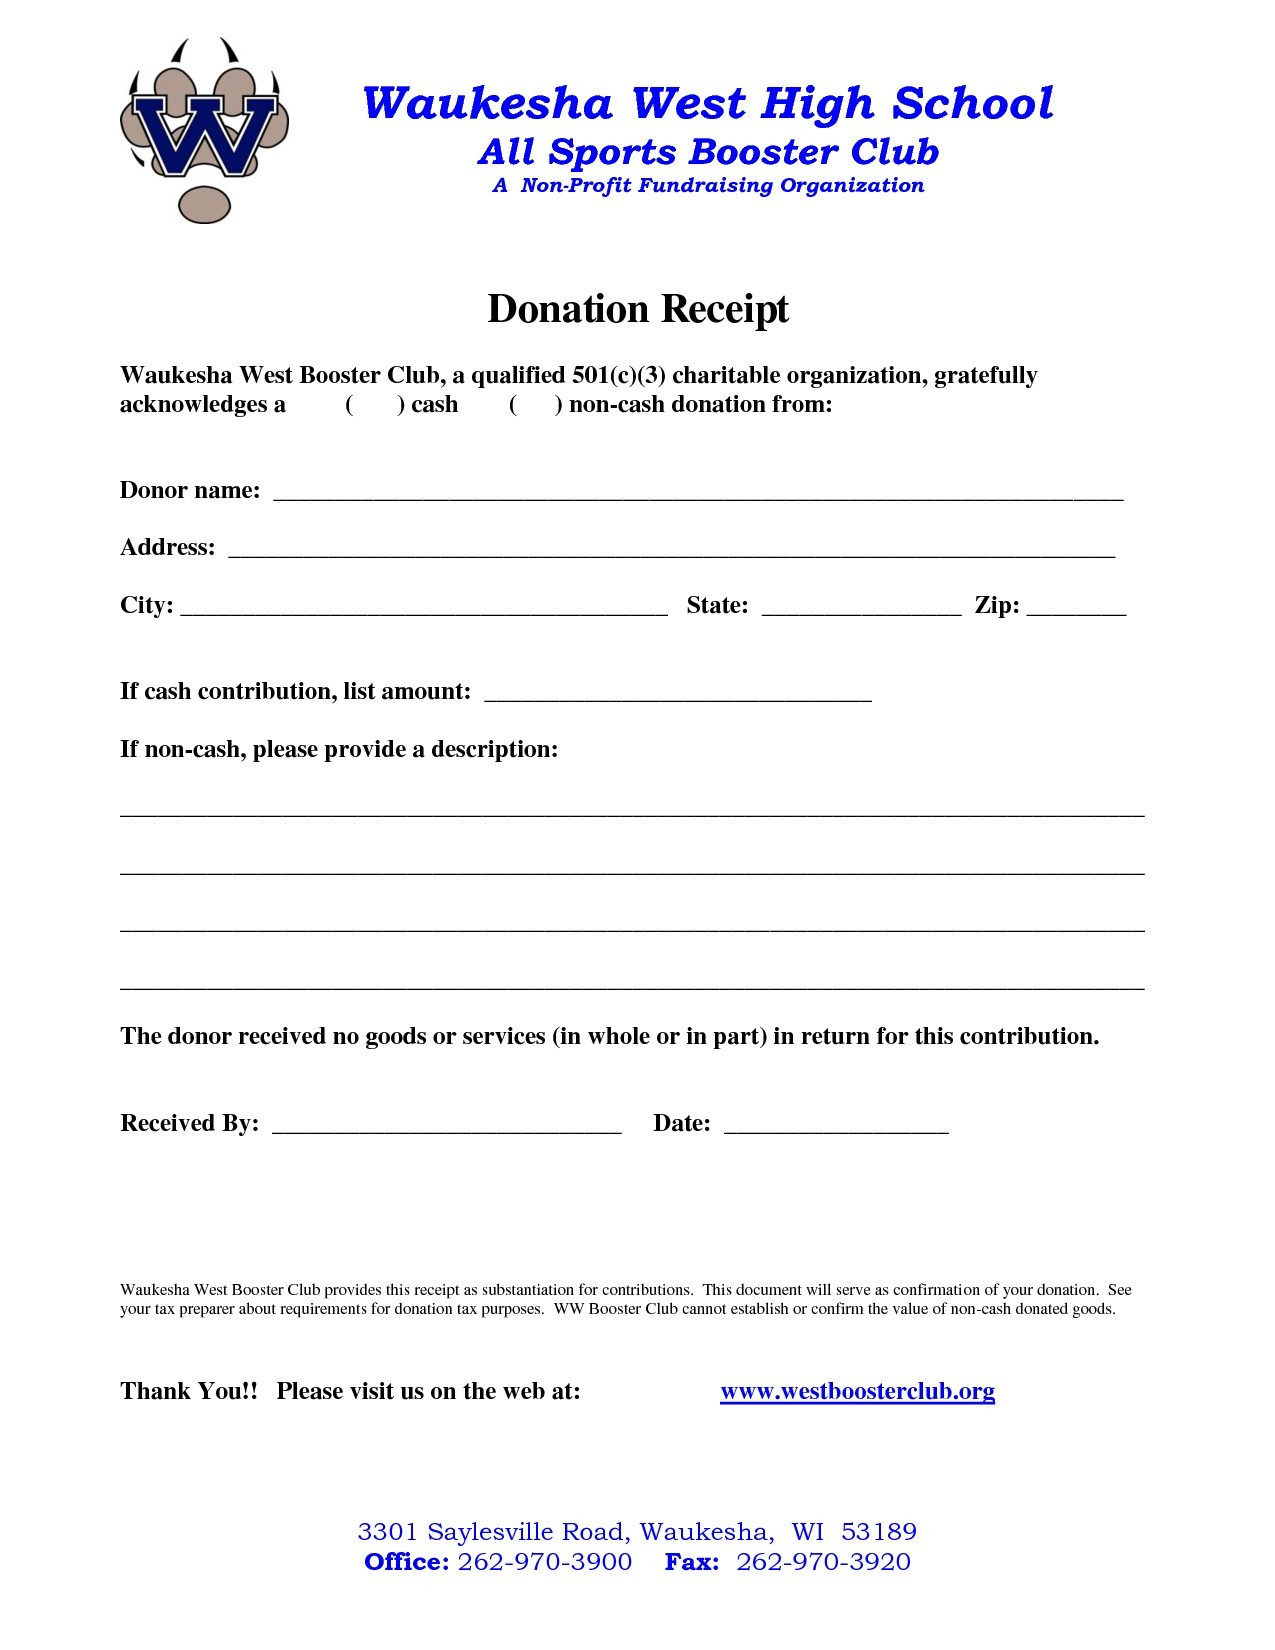 Charitable Donation Receipt Letter Template - Donation Receipt Template New Awesome Non Profit Donation Receipt